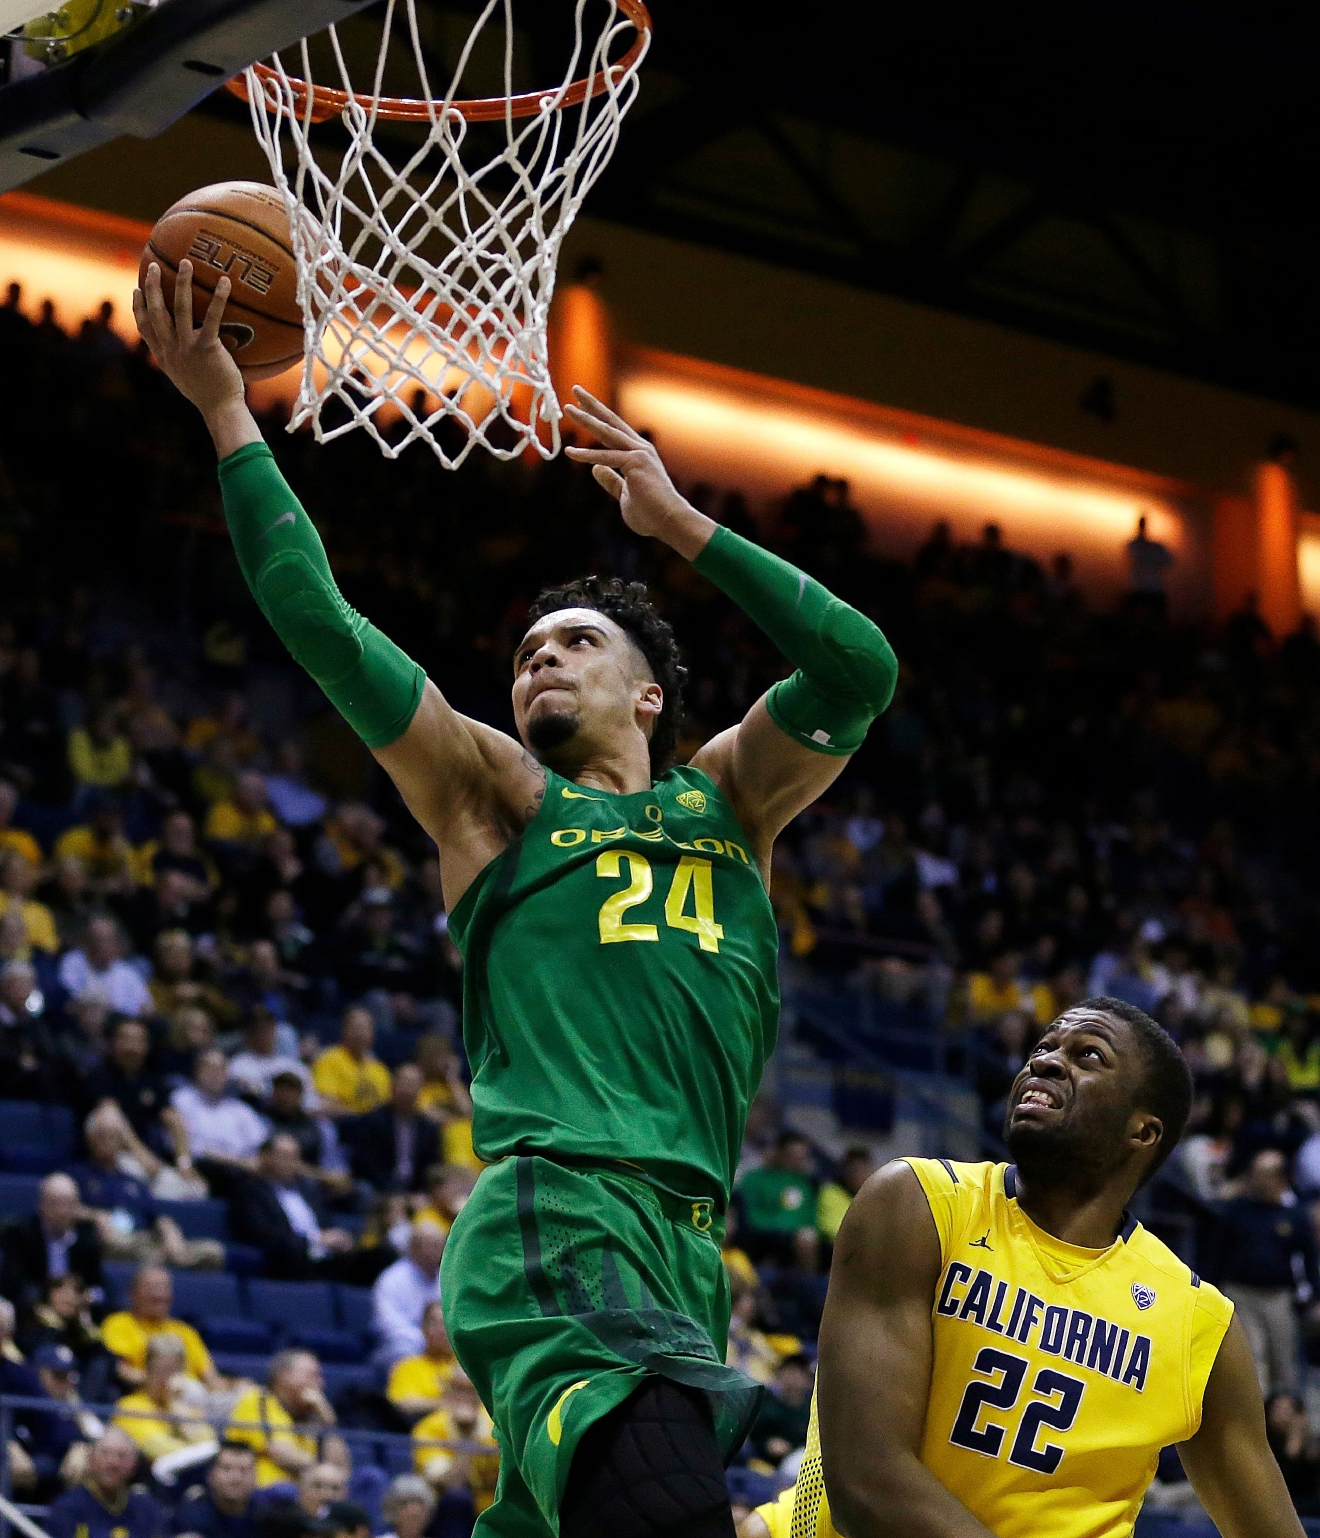 Oregon's Dillon Brooks, left, lays up a shot over California's Kingsley Okoroh (22) in the second half of an NCAA college basketball game Wednesday, Feb. 22, 2017, in Berkeley, Calif. Oregon won 68-65. (AP Photo/Ben Margot)